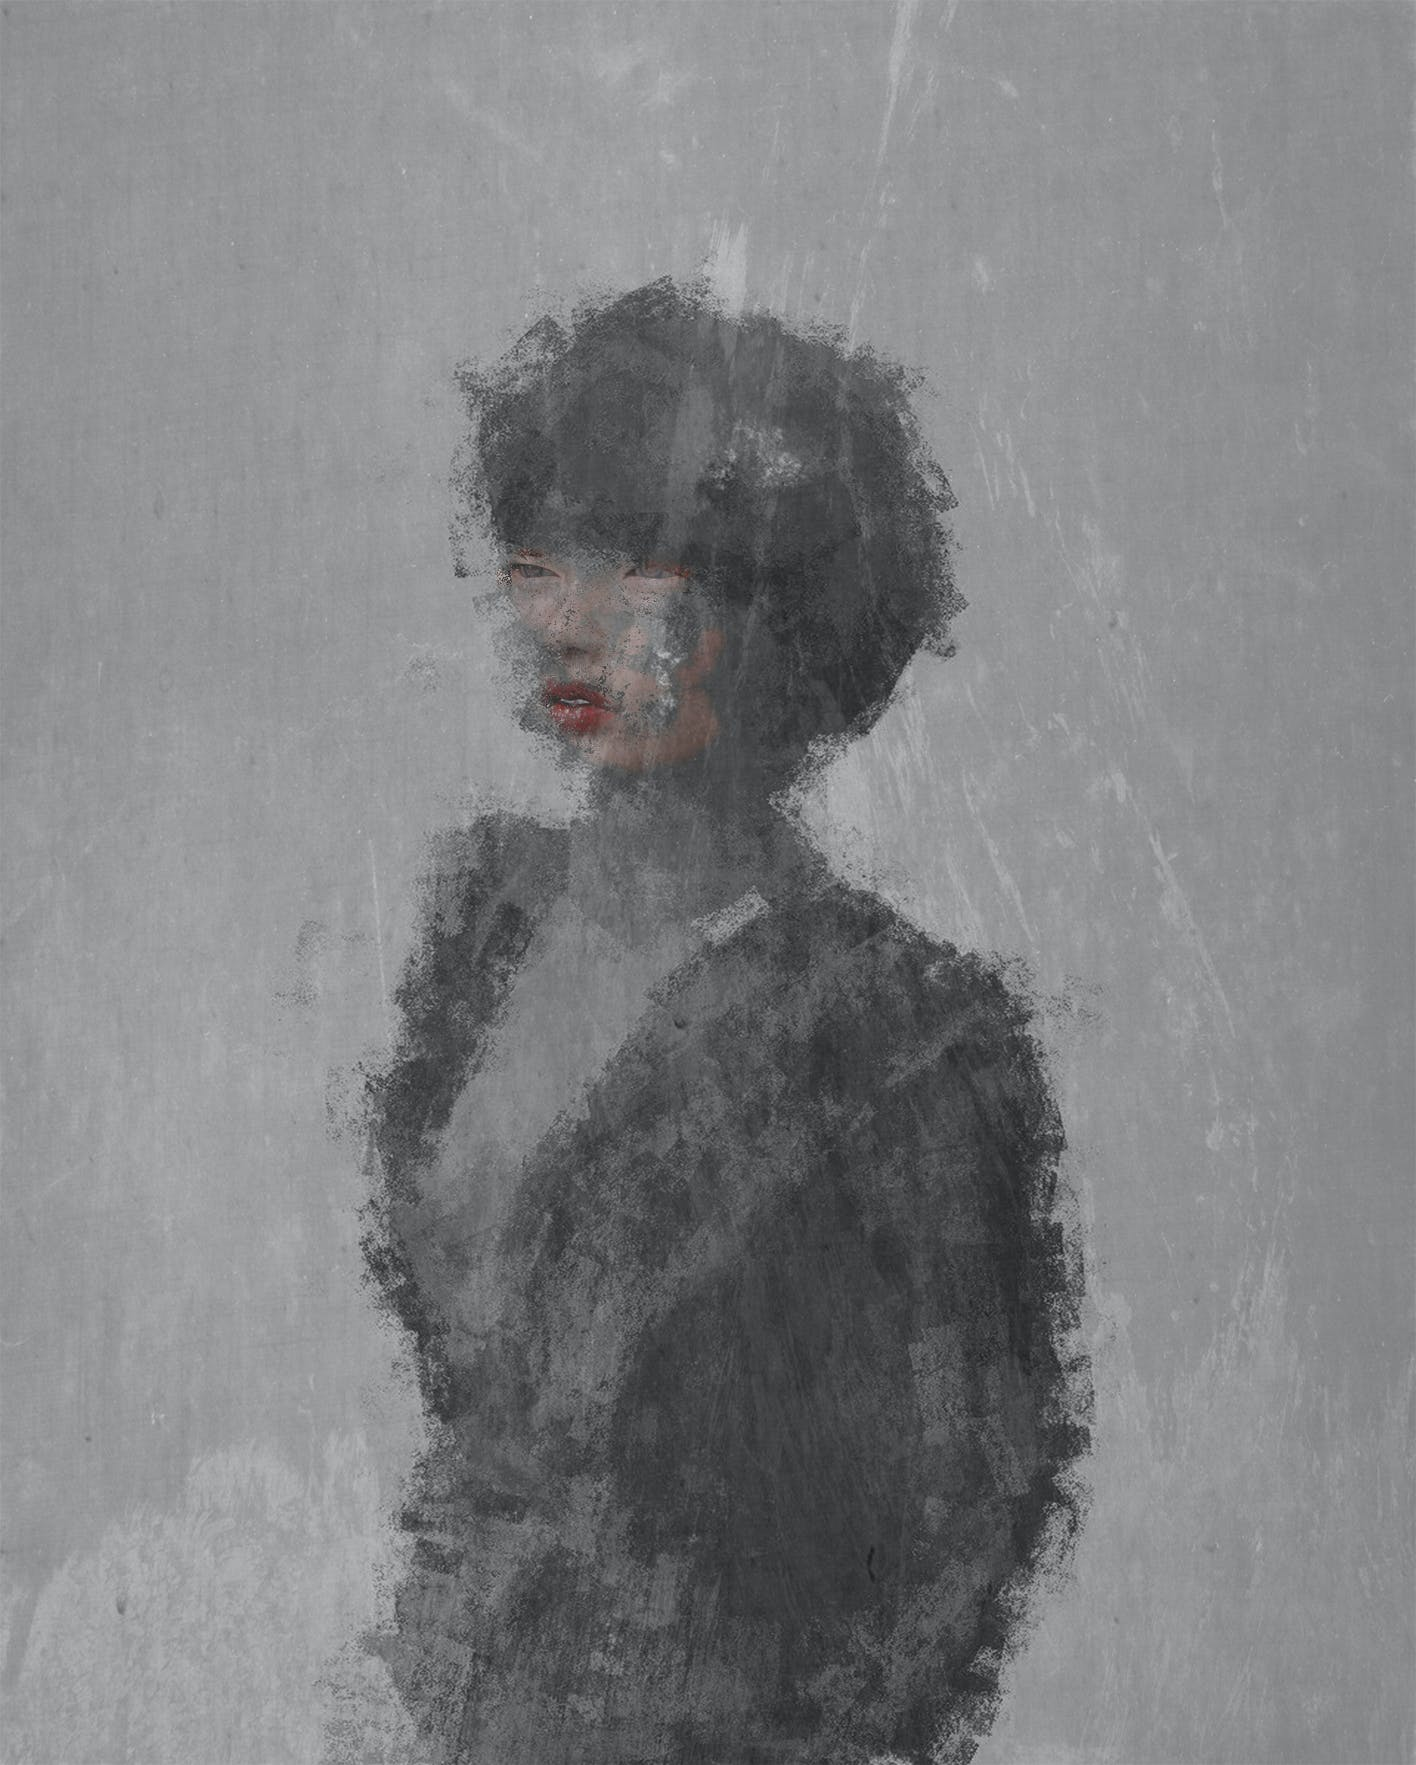 Free stock photo of woman, blurred, drawing